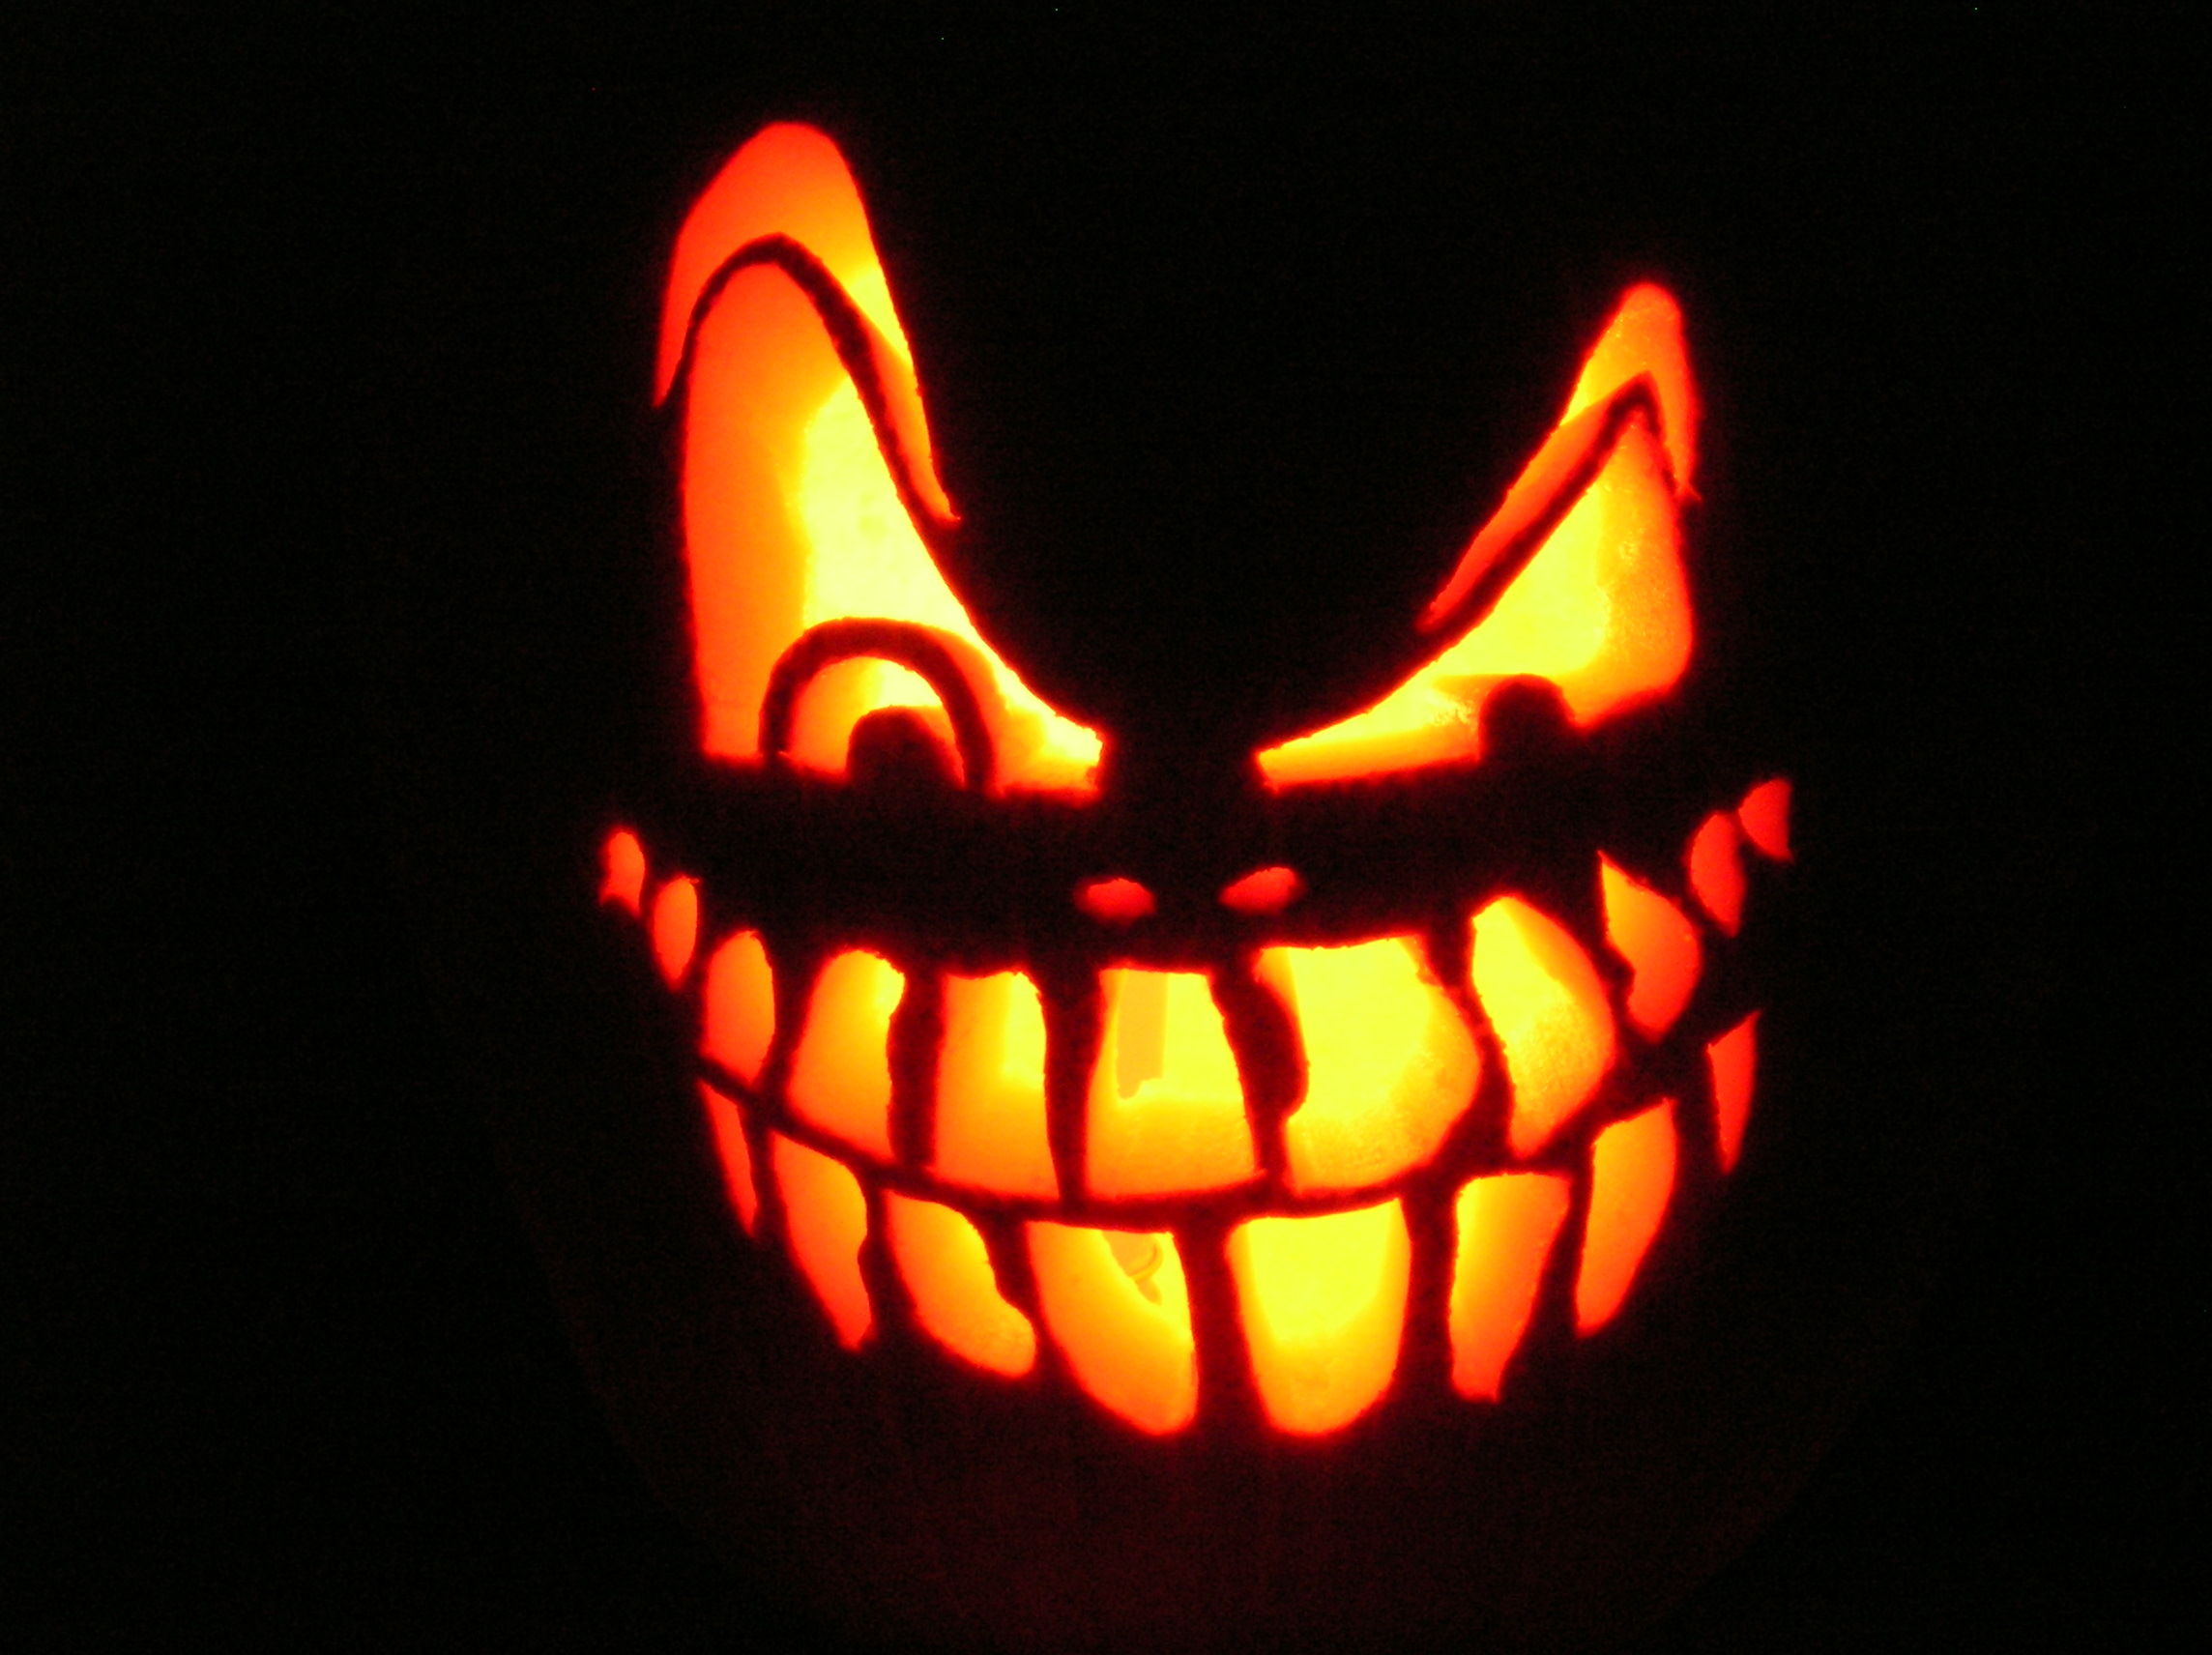 http://upload.wikimedia.org/wikipedia/commons/8/84/Happy_Halloween!